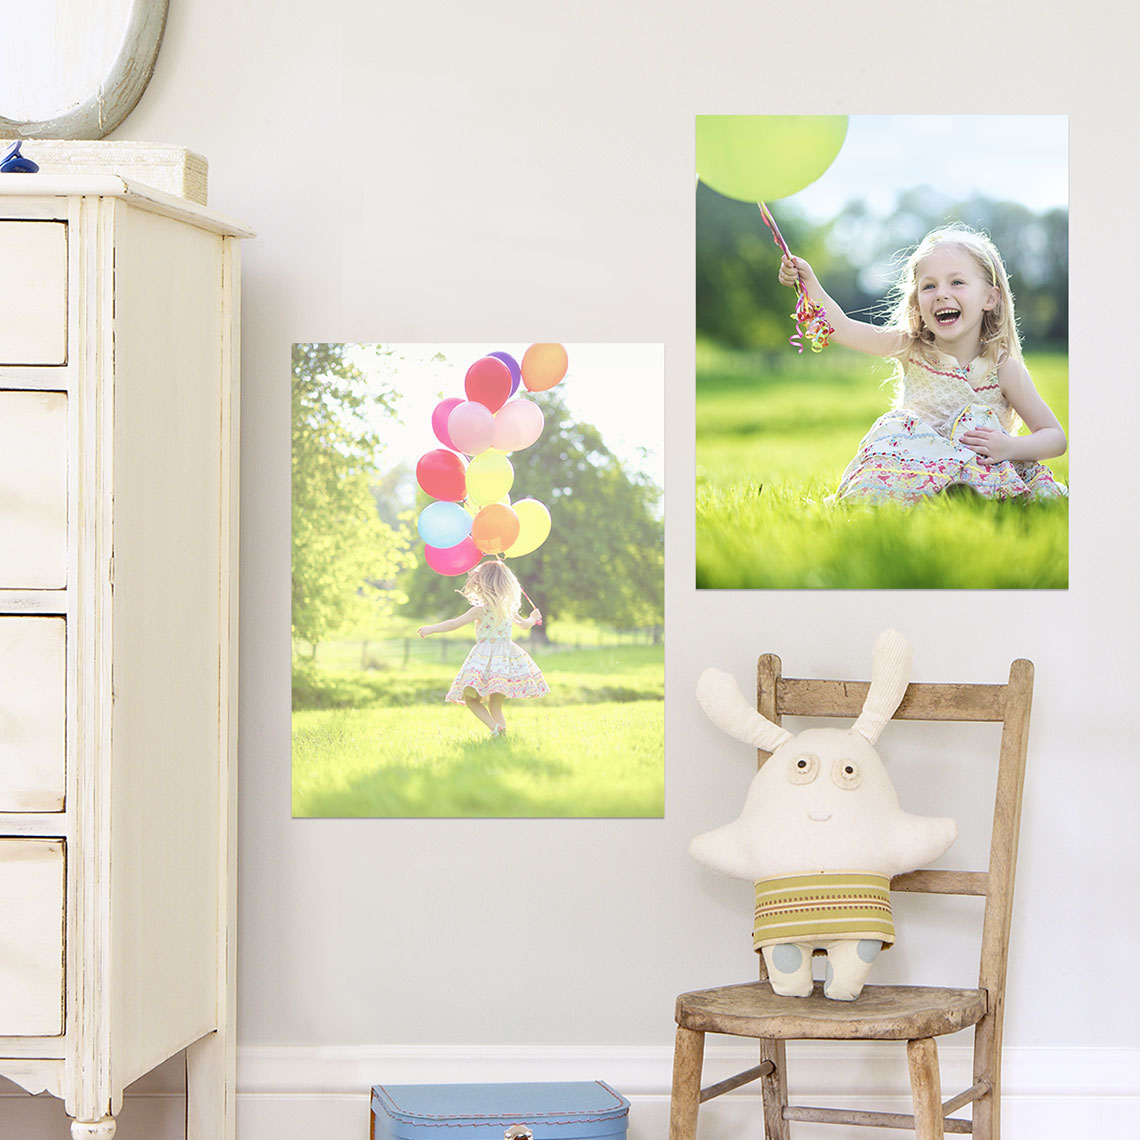 50x75cm 20x30 Poster Glossy Poster Canvas Home Decor